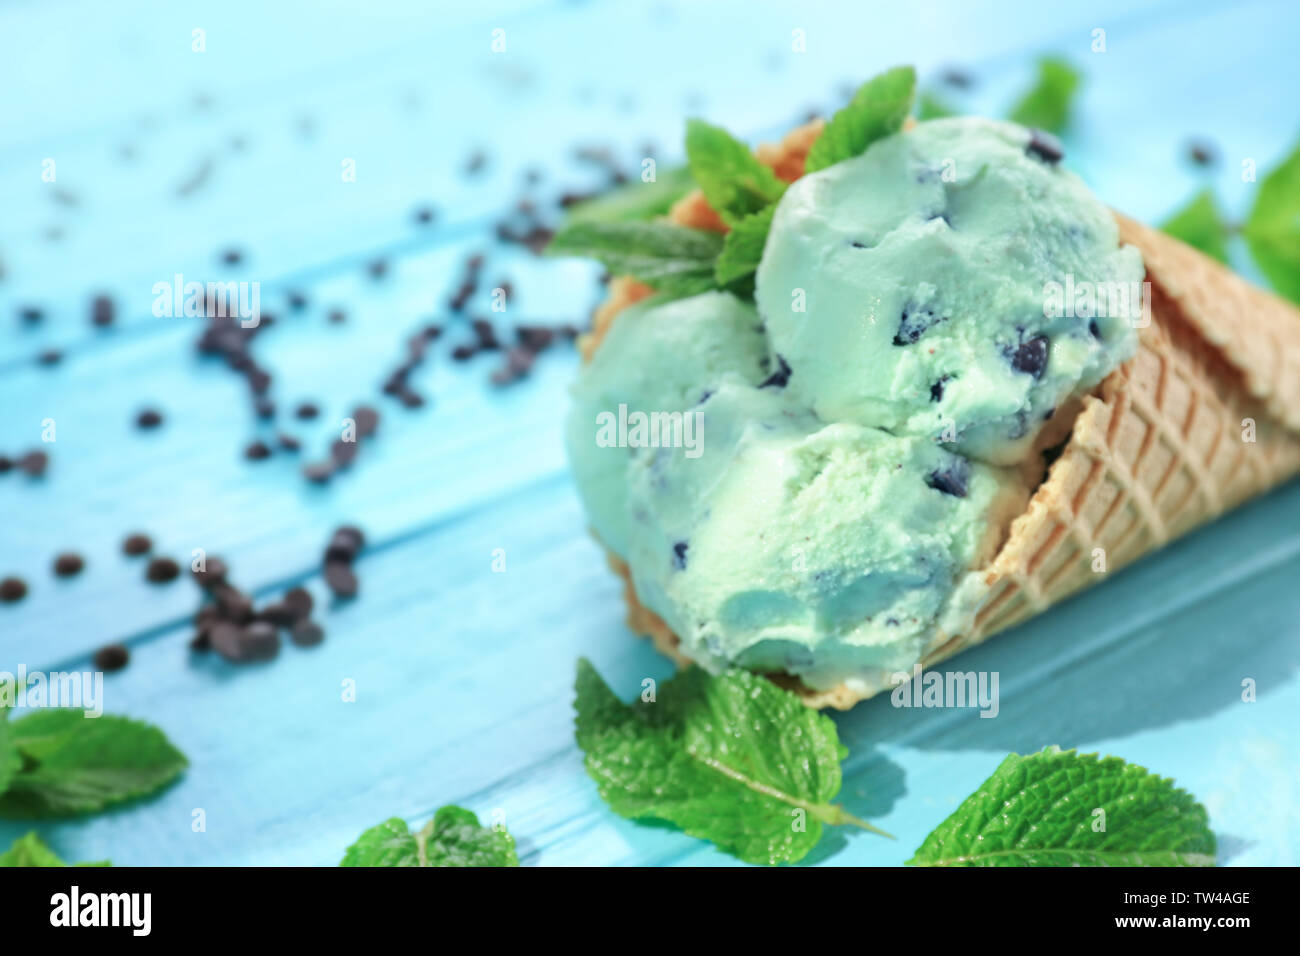 Clip Art Mint Ice Cream Transparent Background, HD Png Download -  3056x8000(#136240) - PngFind